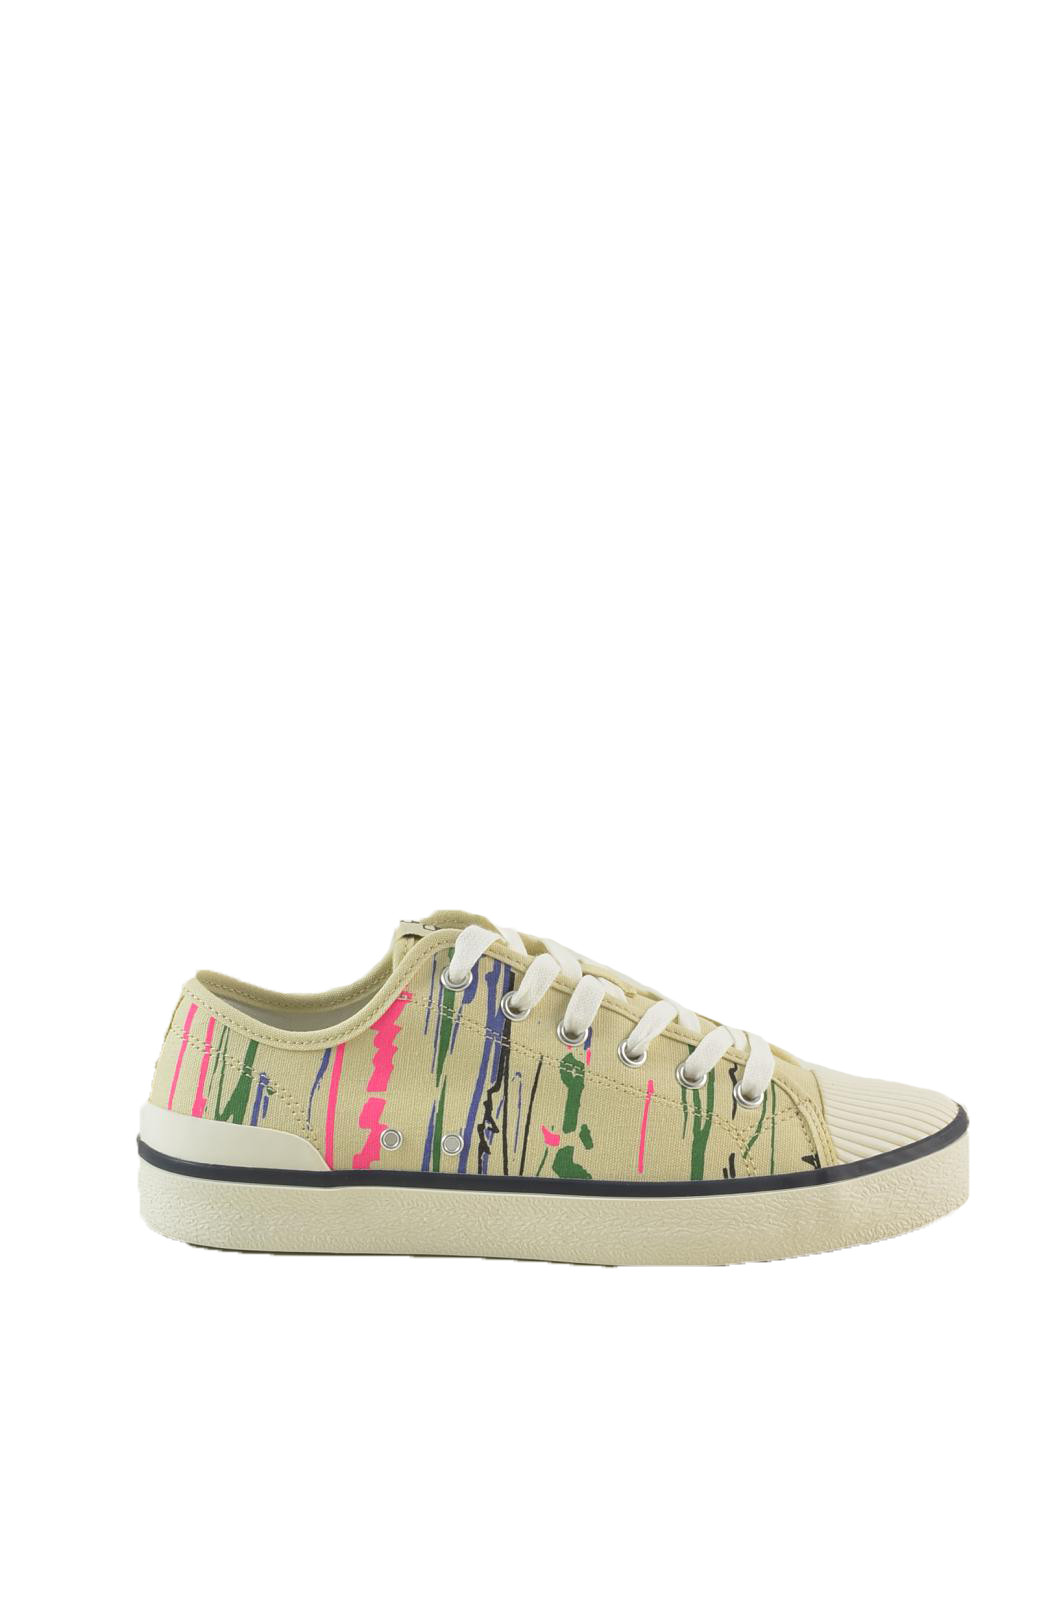 Isabel Marant Sneakers Donna